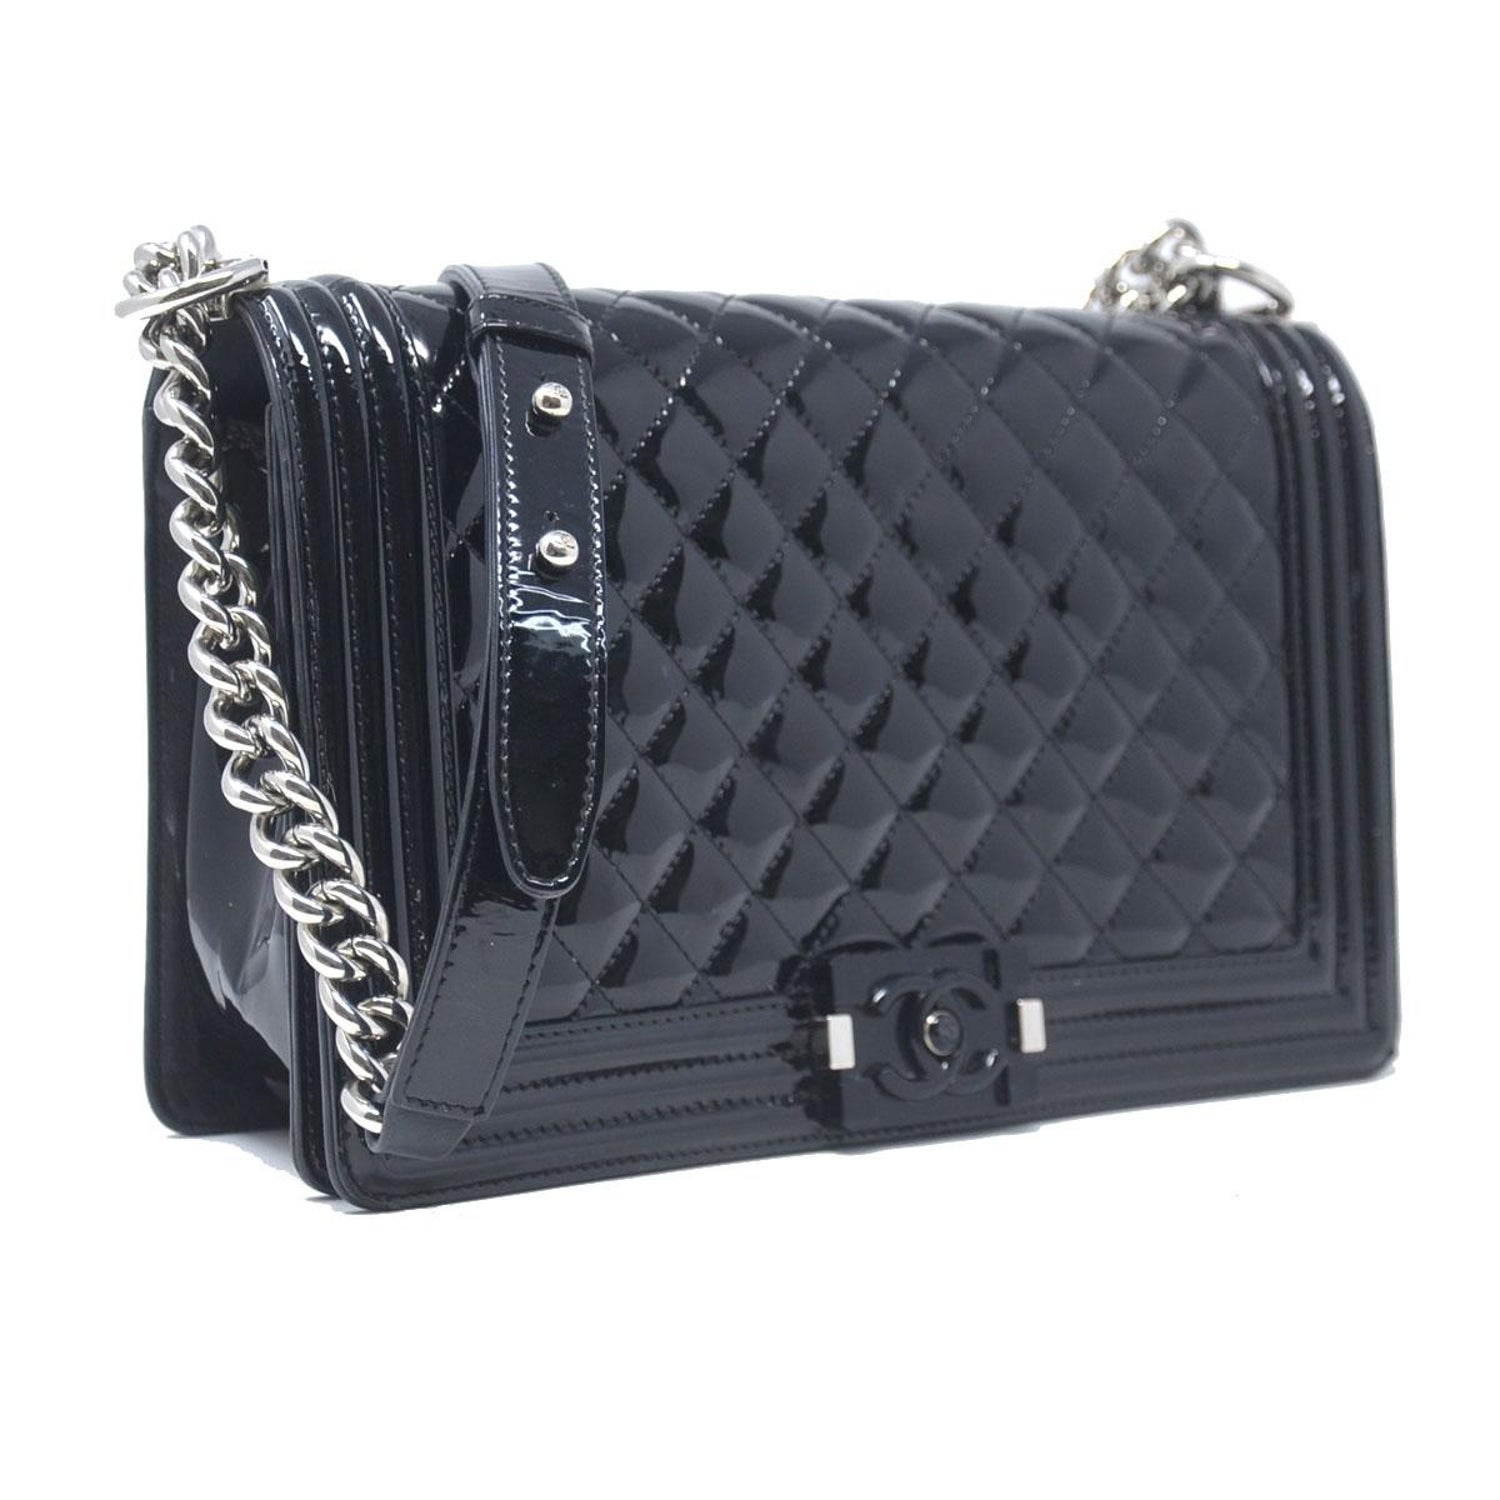 0add8c54427968 Chanel Le Boy Bag SHW Black Jumbo Patent Leather For Sale at 1stdibs